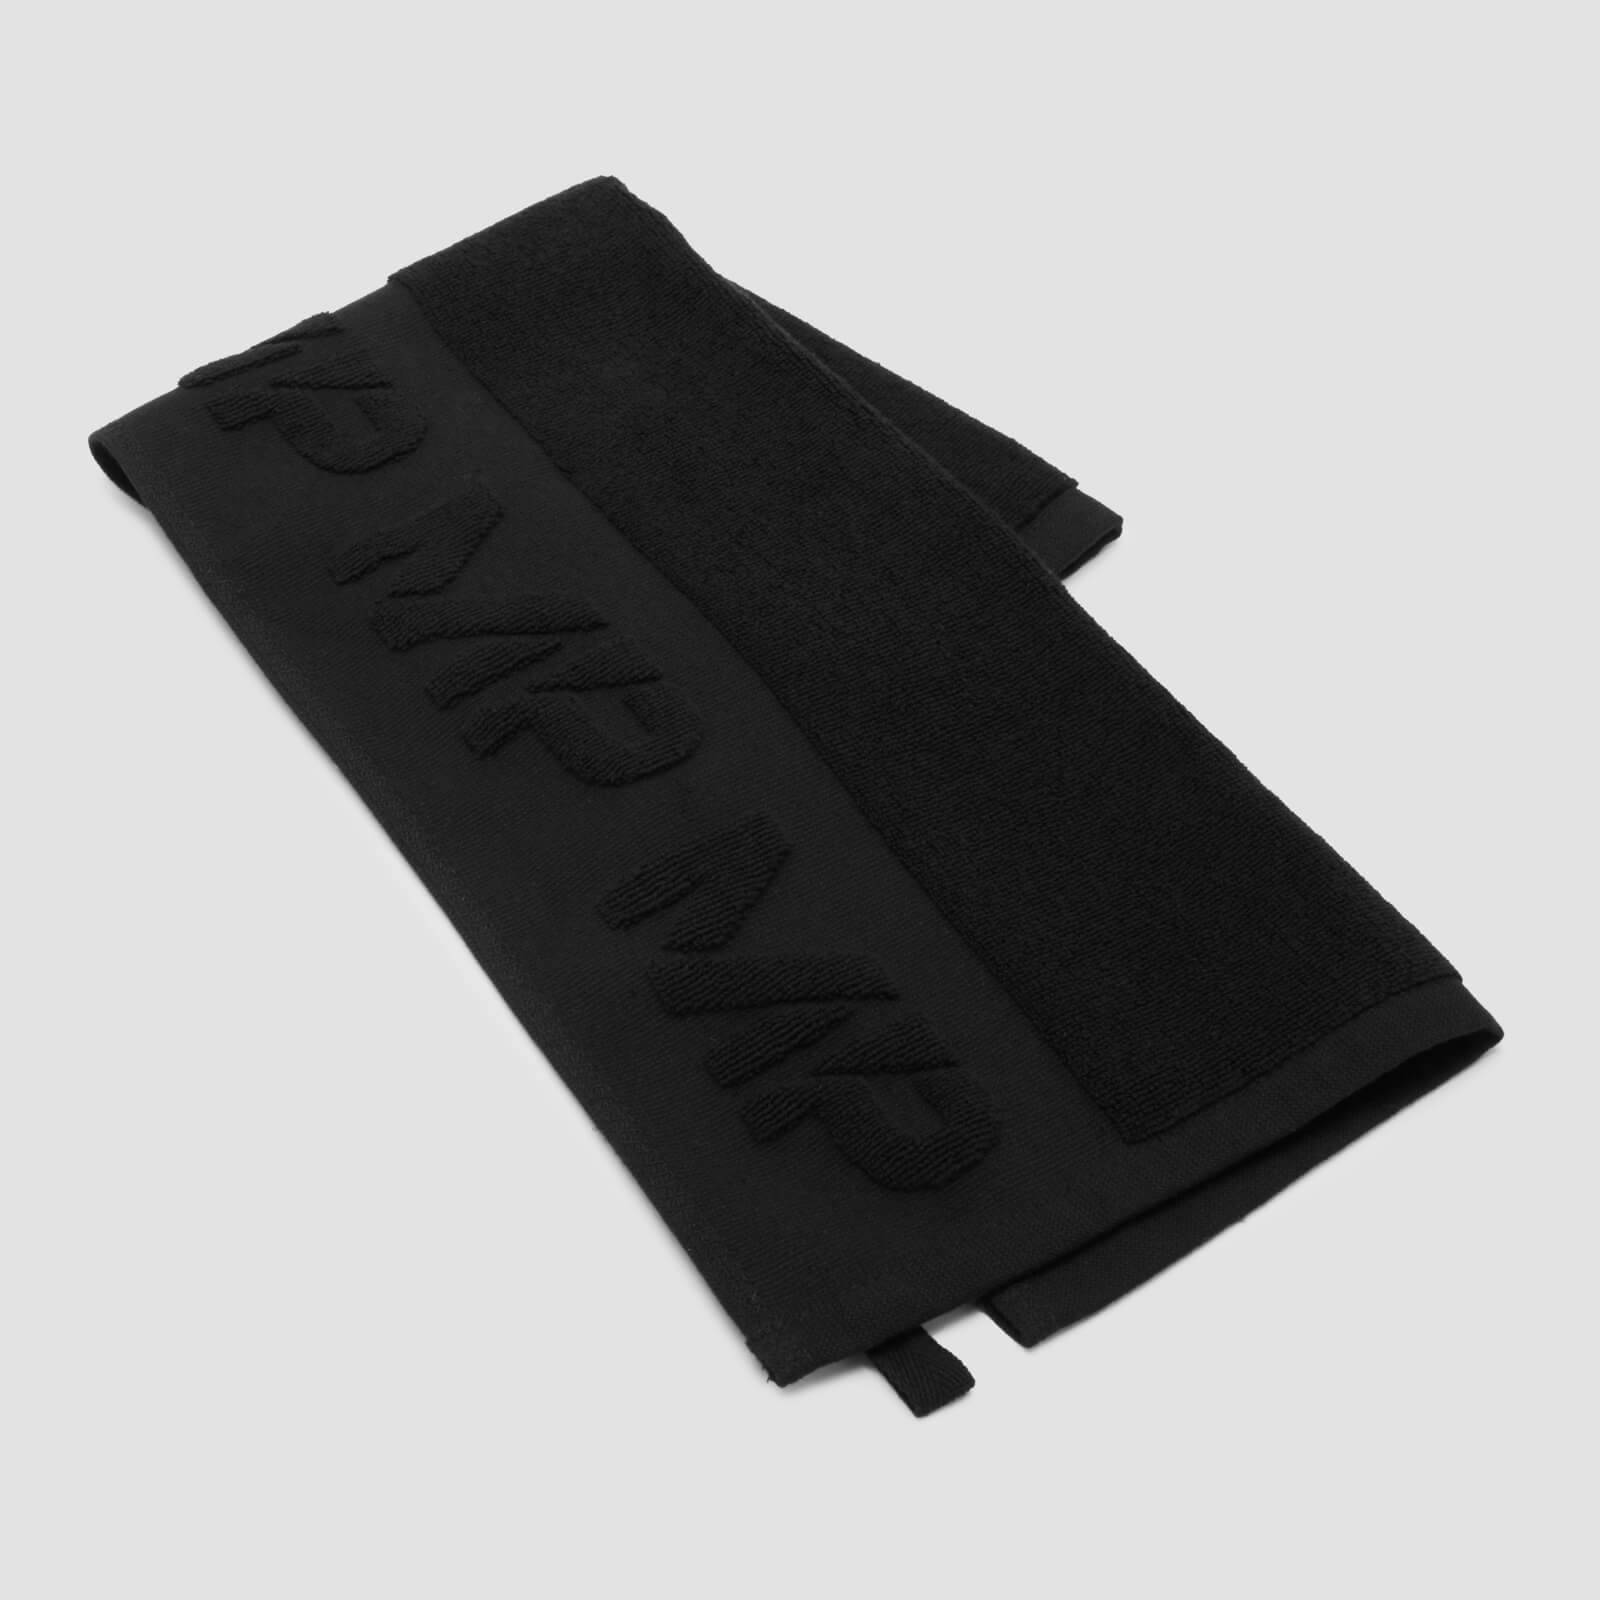 Myprotein MP Essentials Hand Towel - Black